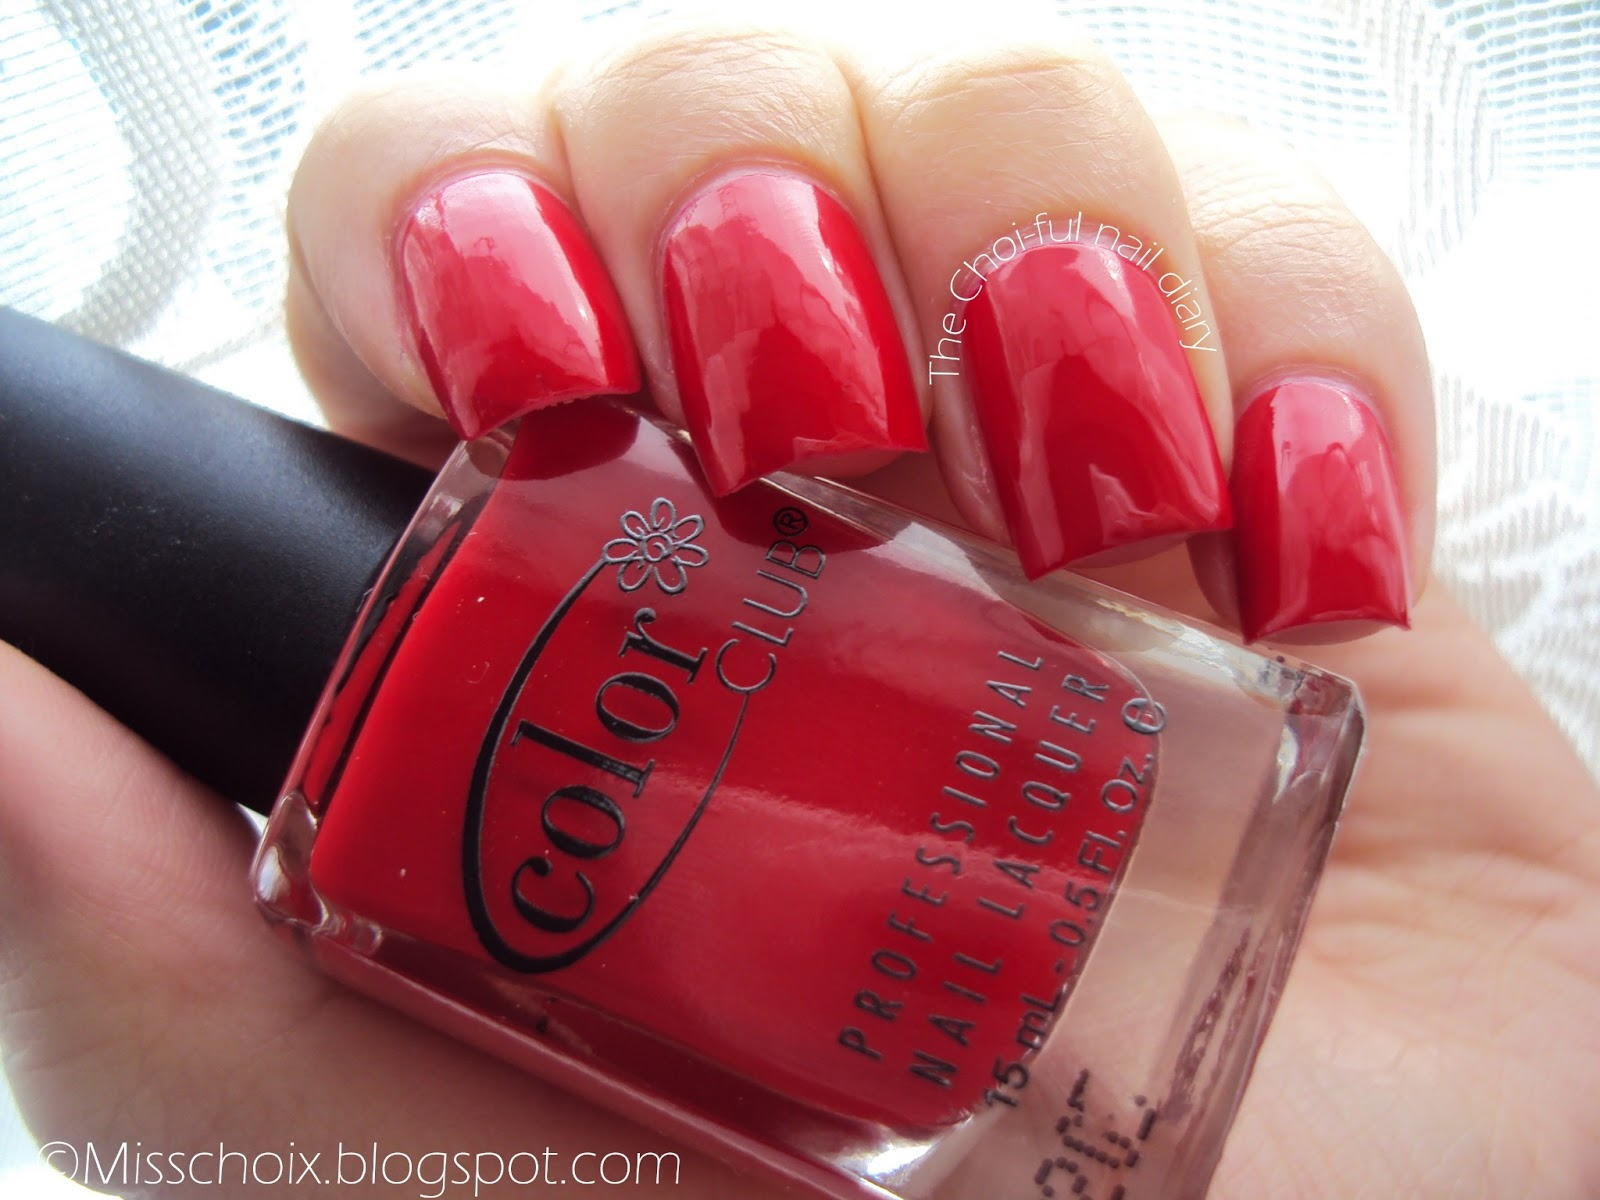 Color Club\'s Fiesta collection review and swatches - Choi\'s nails